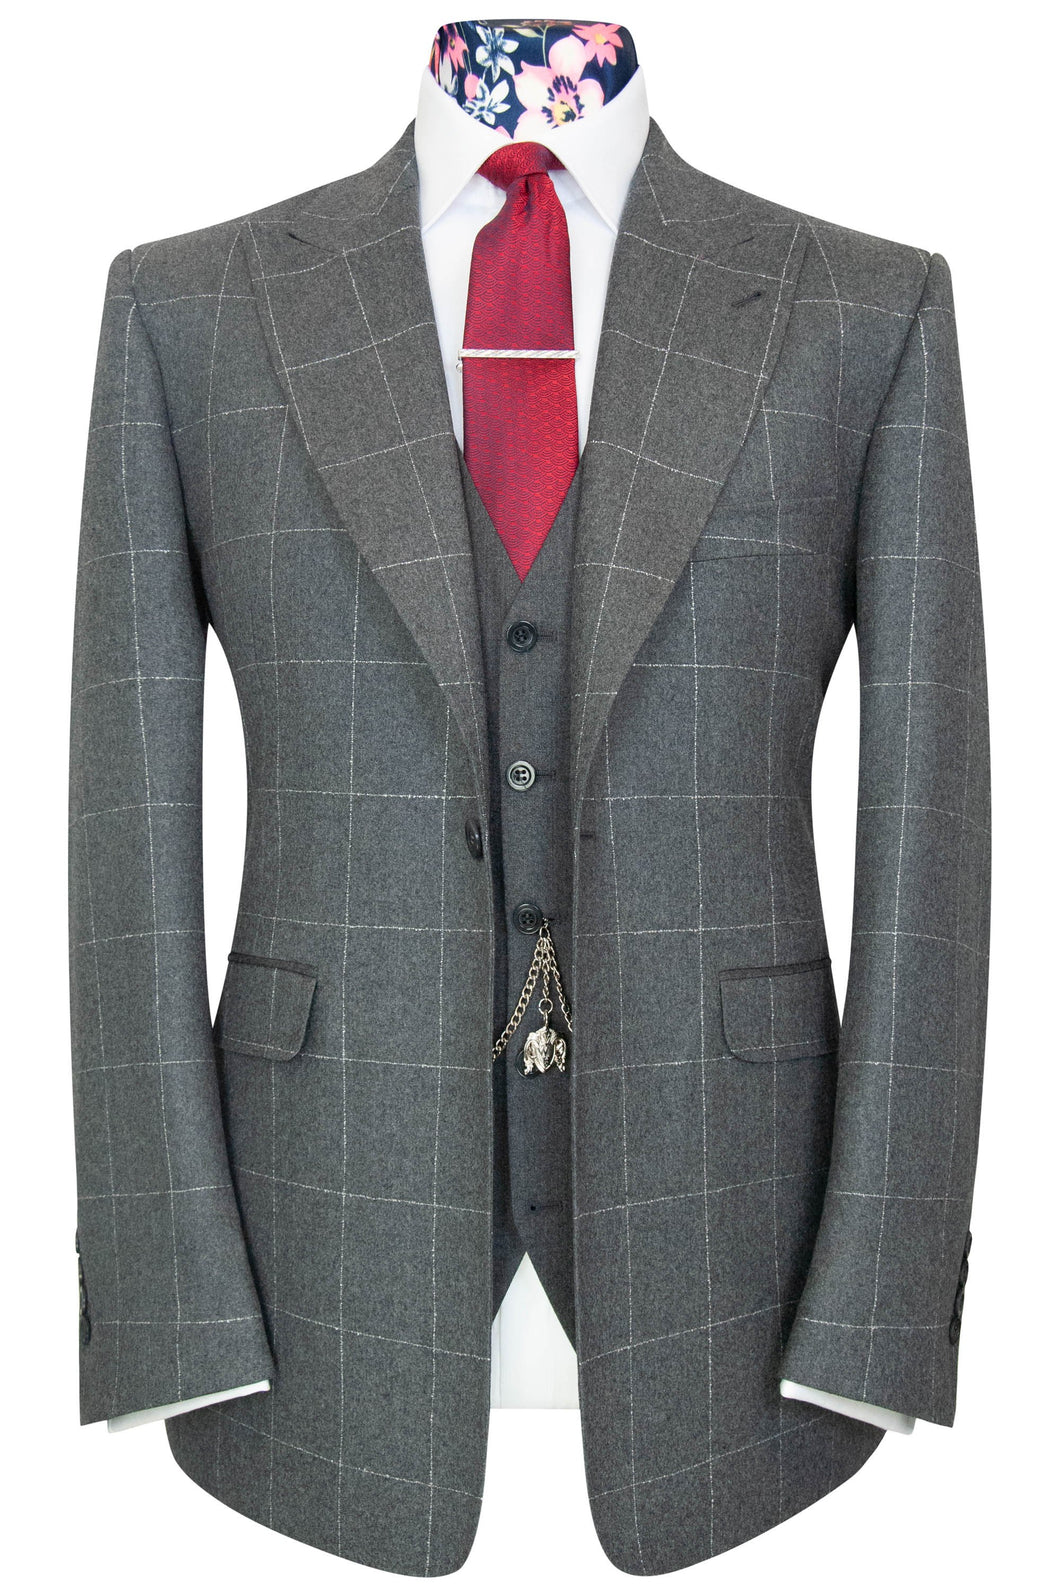 William Hunt Savile Row Dove grey jacket with white windowpane check.